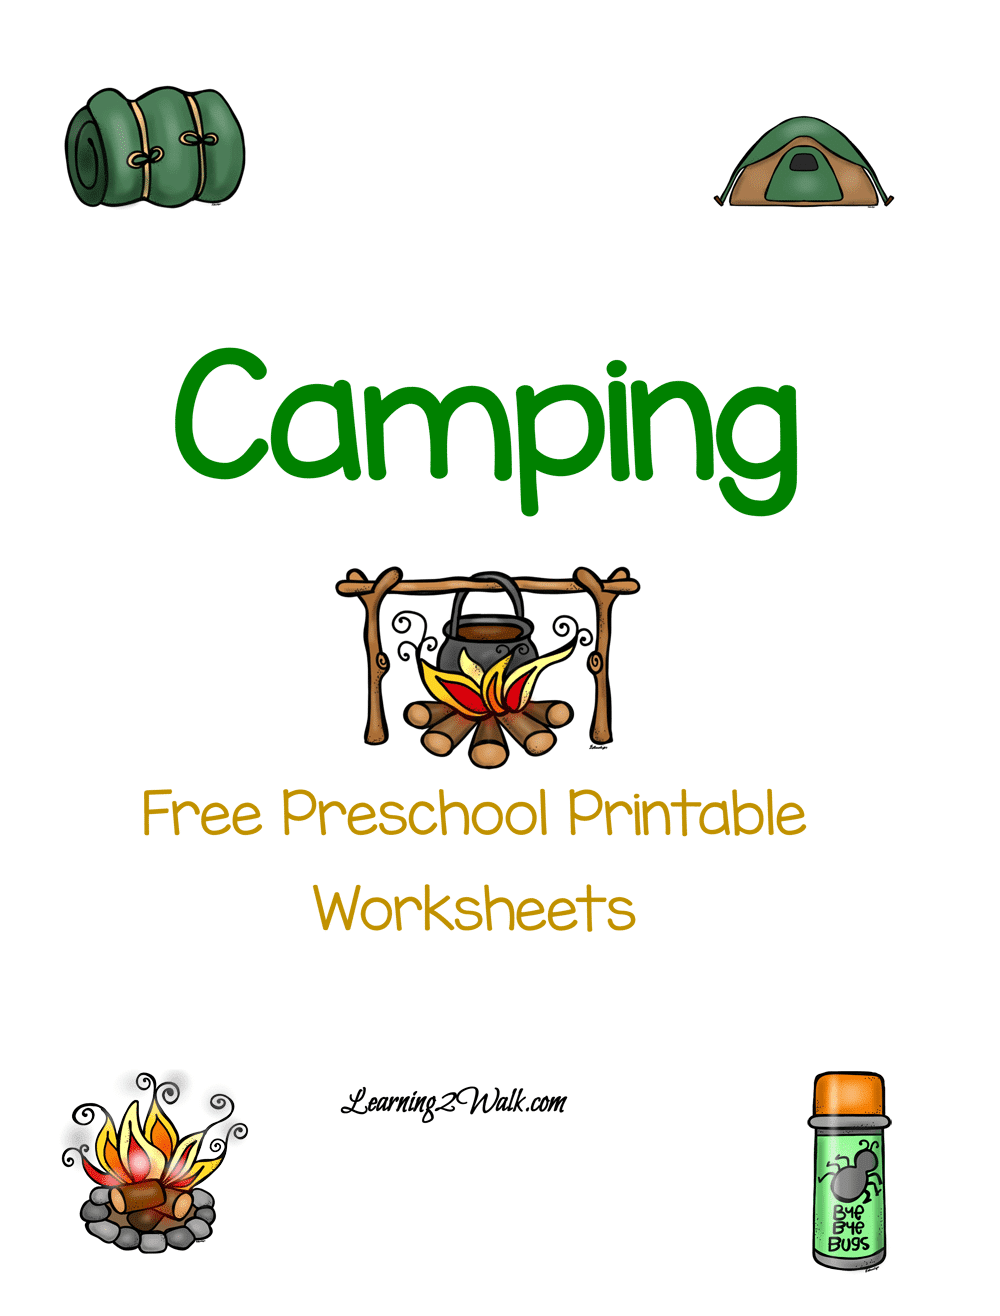 Free Camping Preschool Printable Worksheets